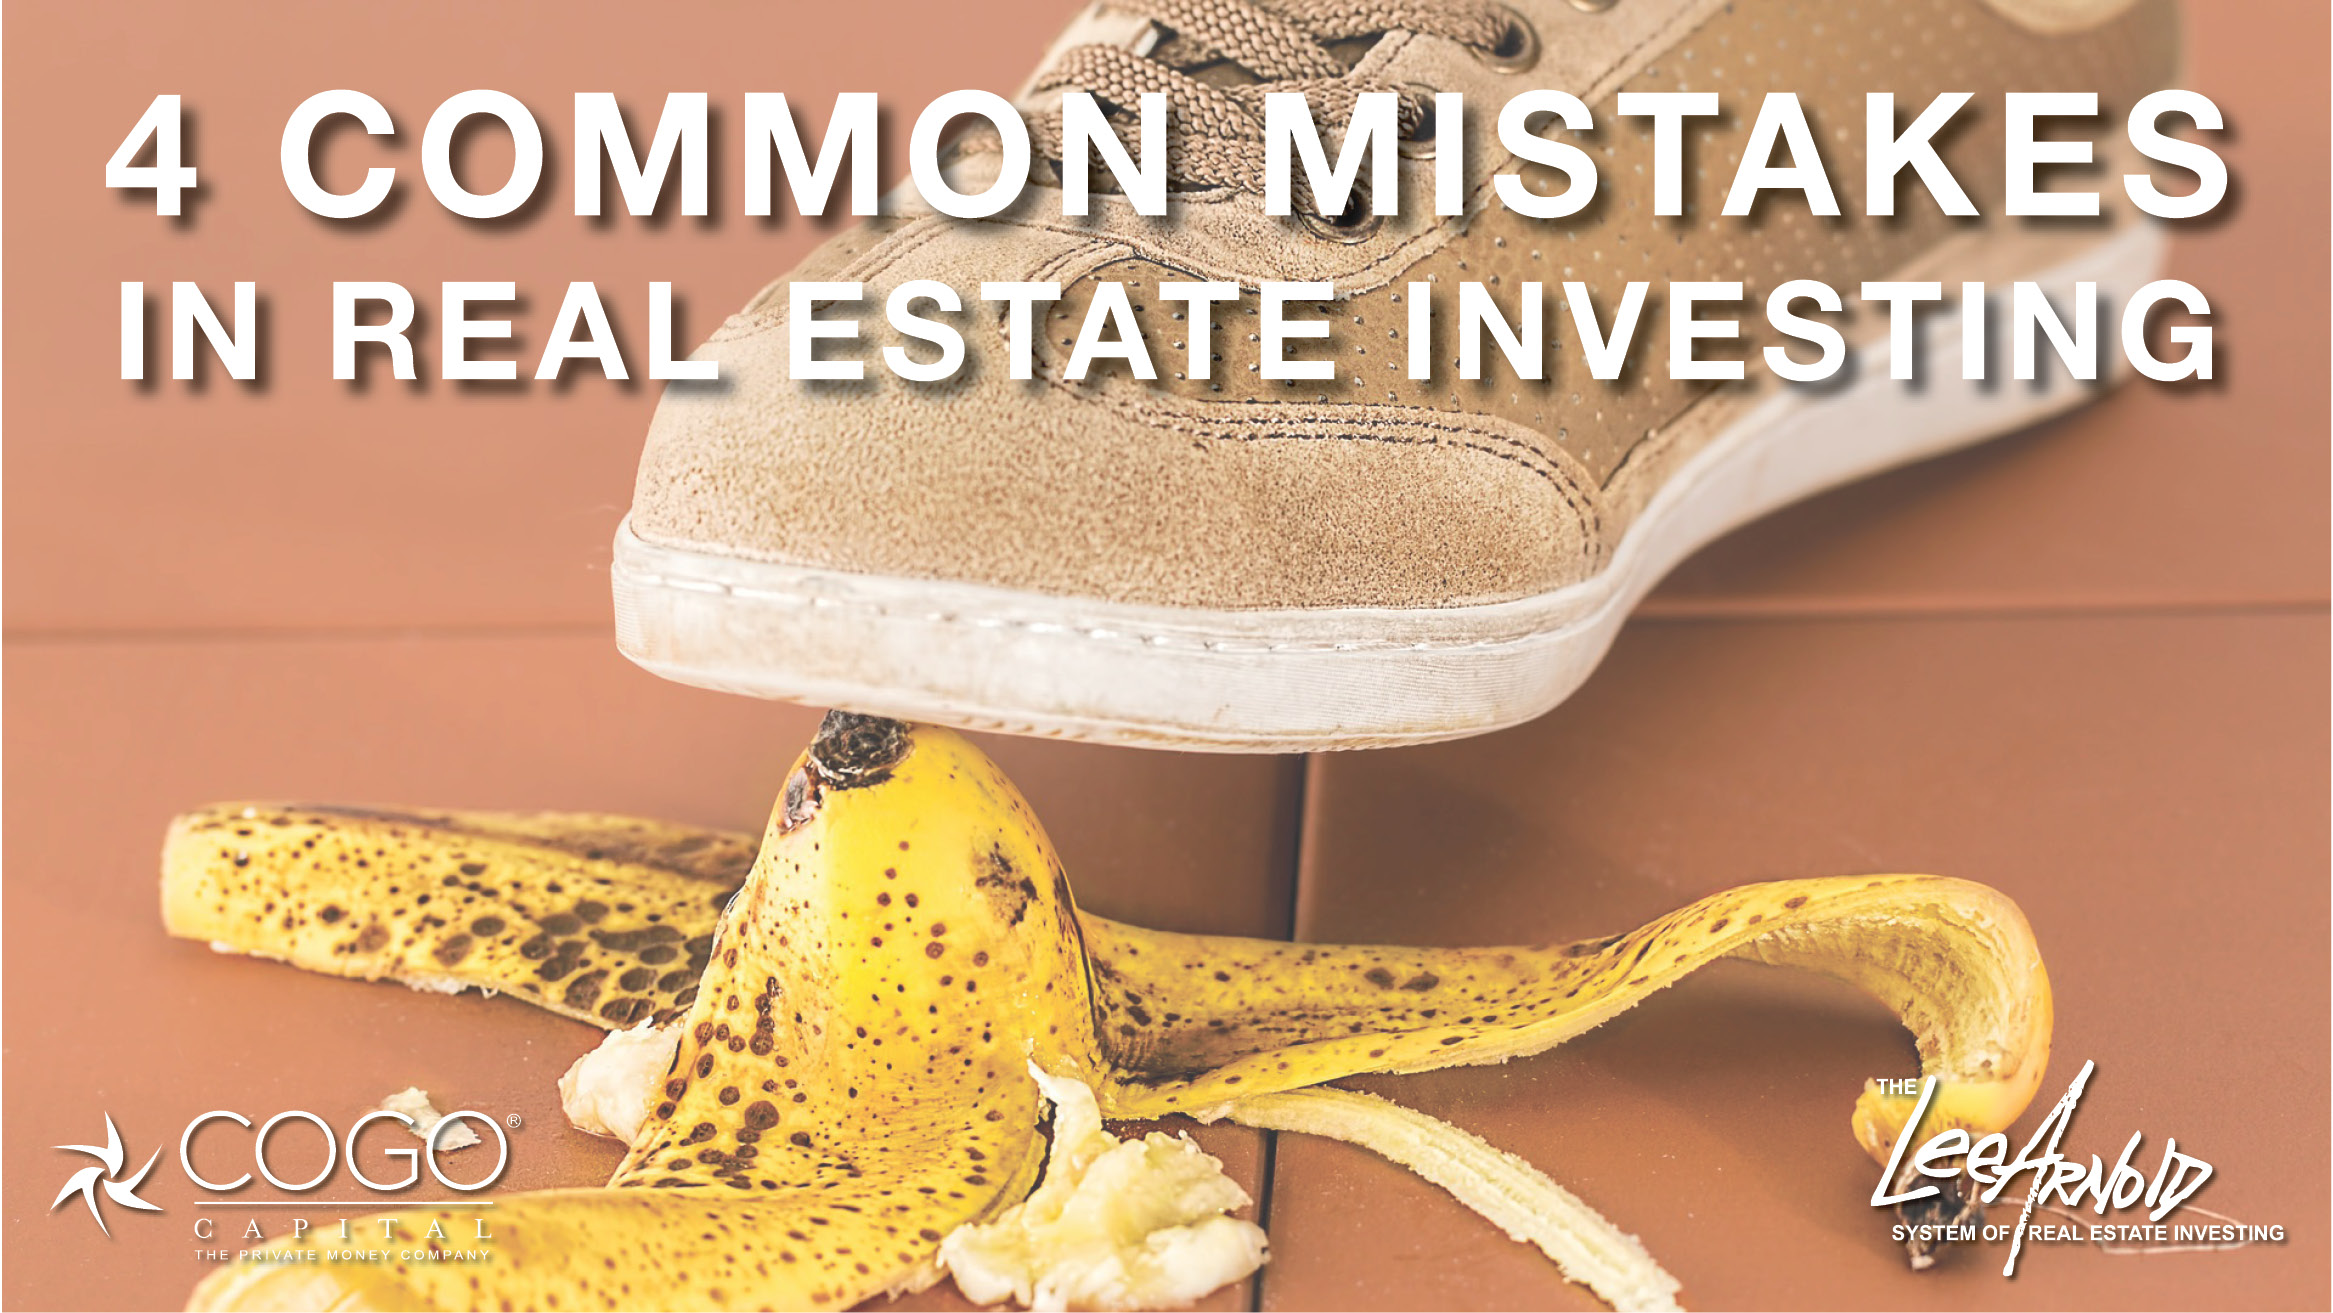 4 COMMON MISTAKES IN REAL ESTATE INVESTING